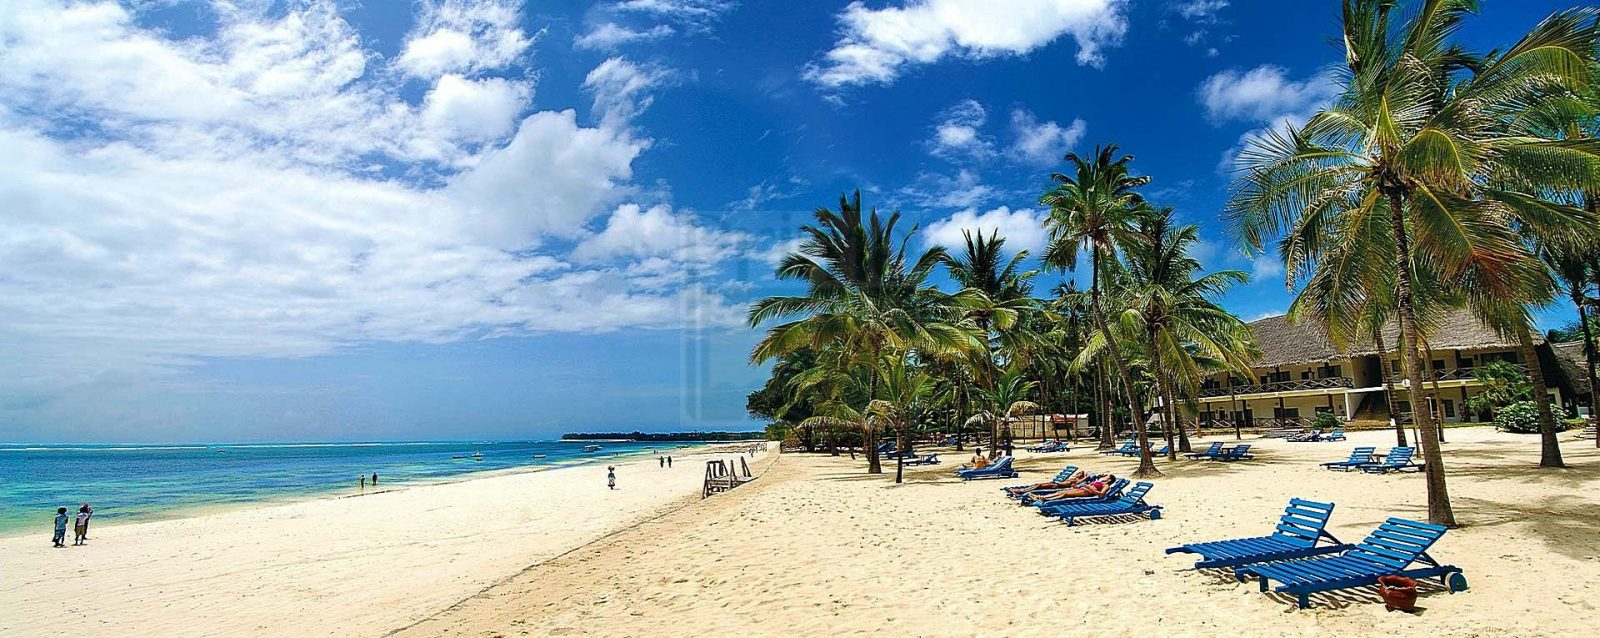 5 Days Luxury Malindi Beach Holiday Safari Kenya Tour